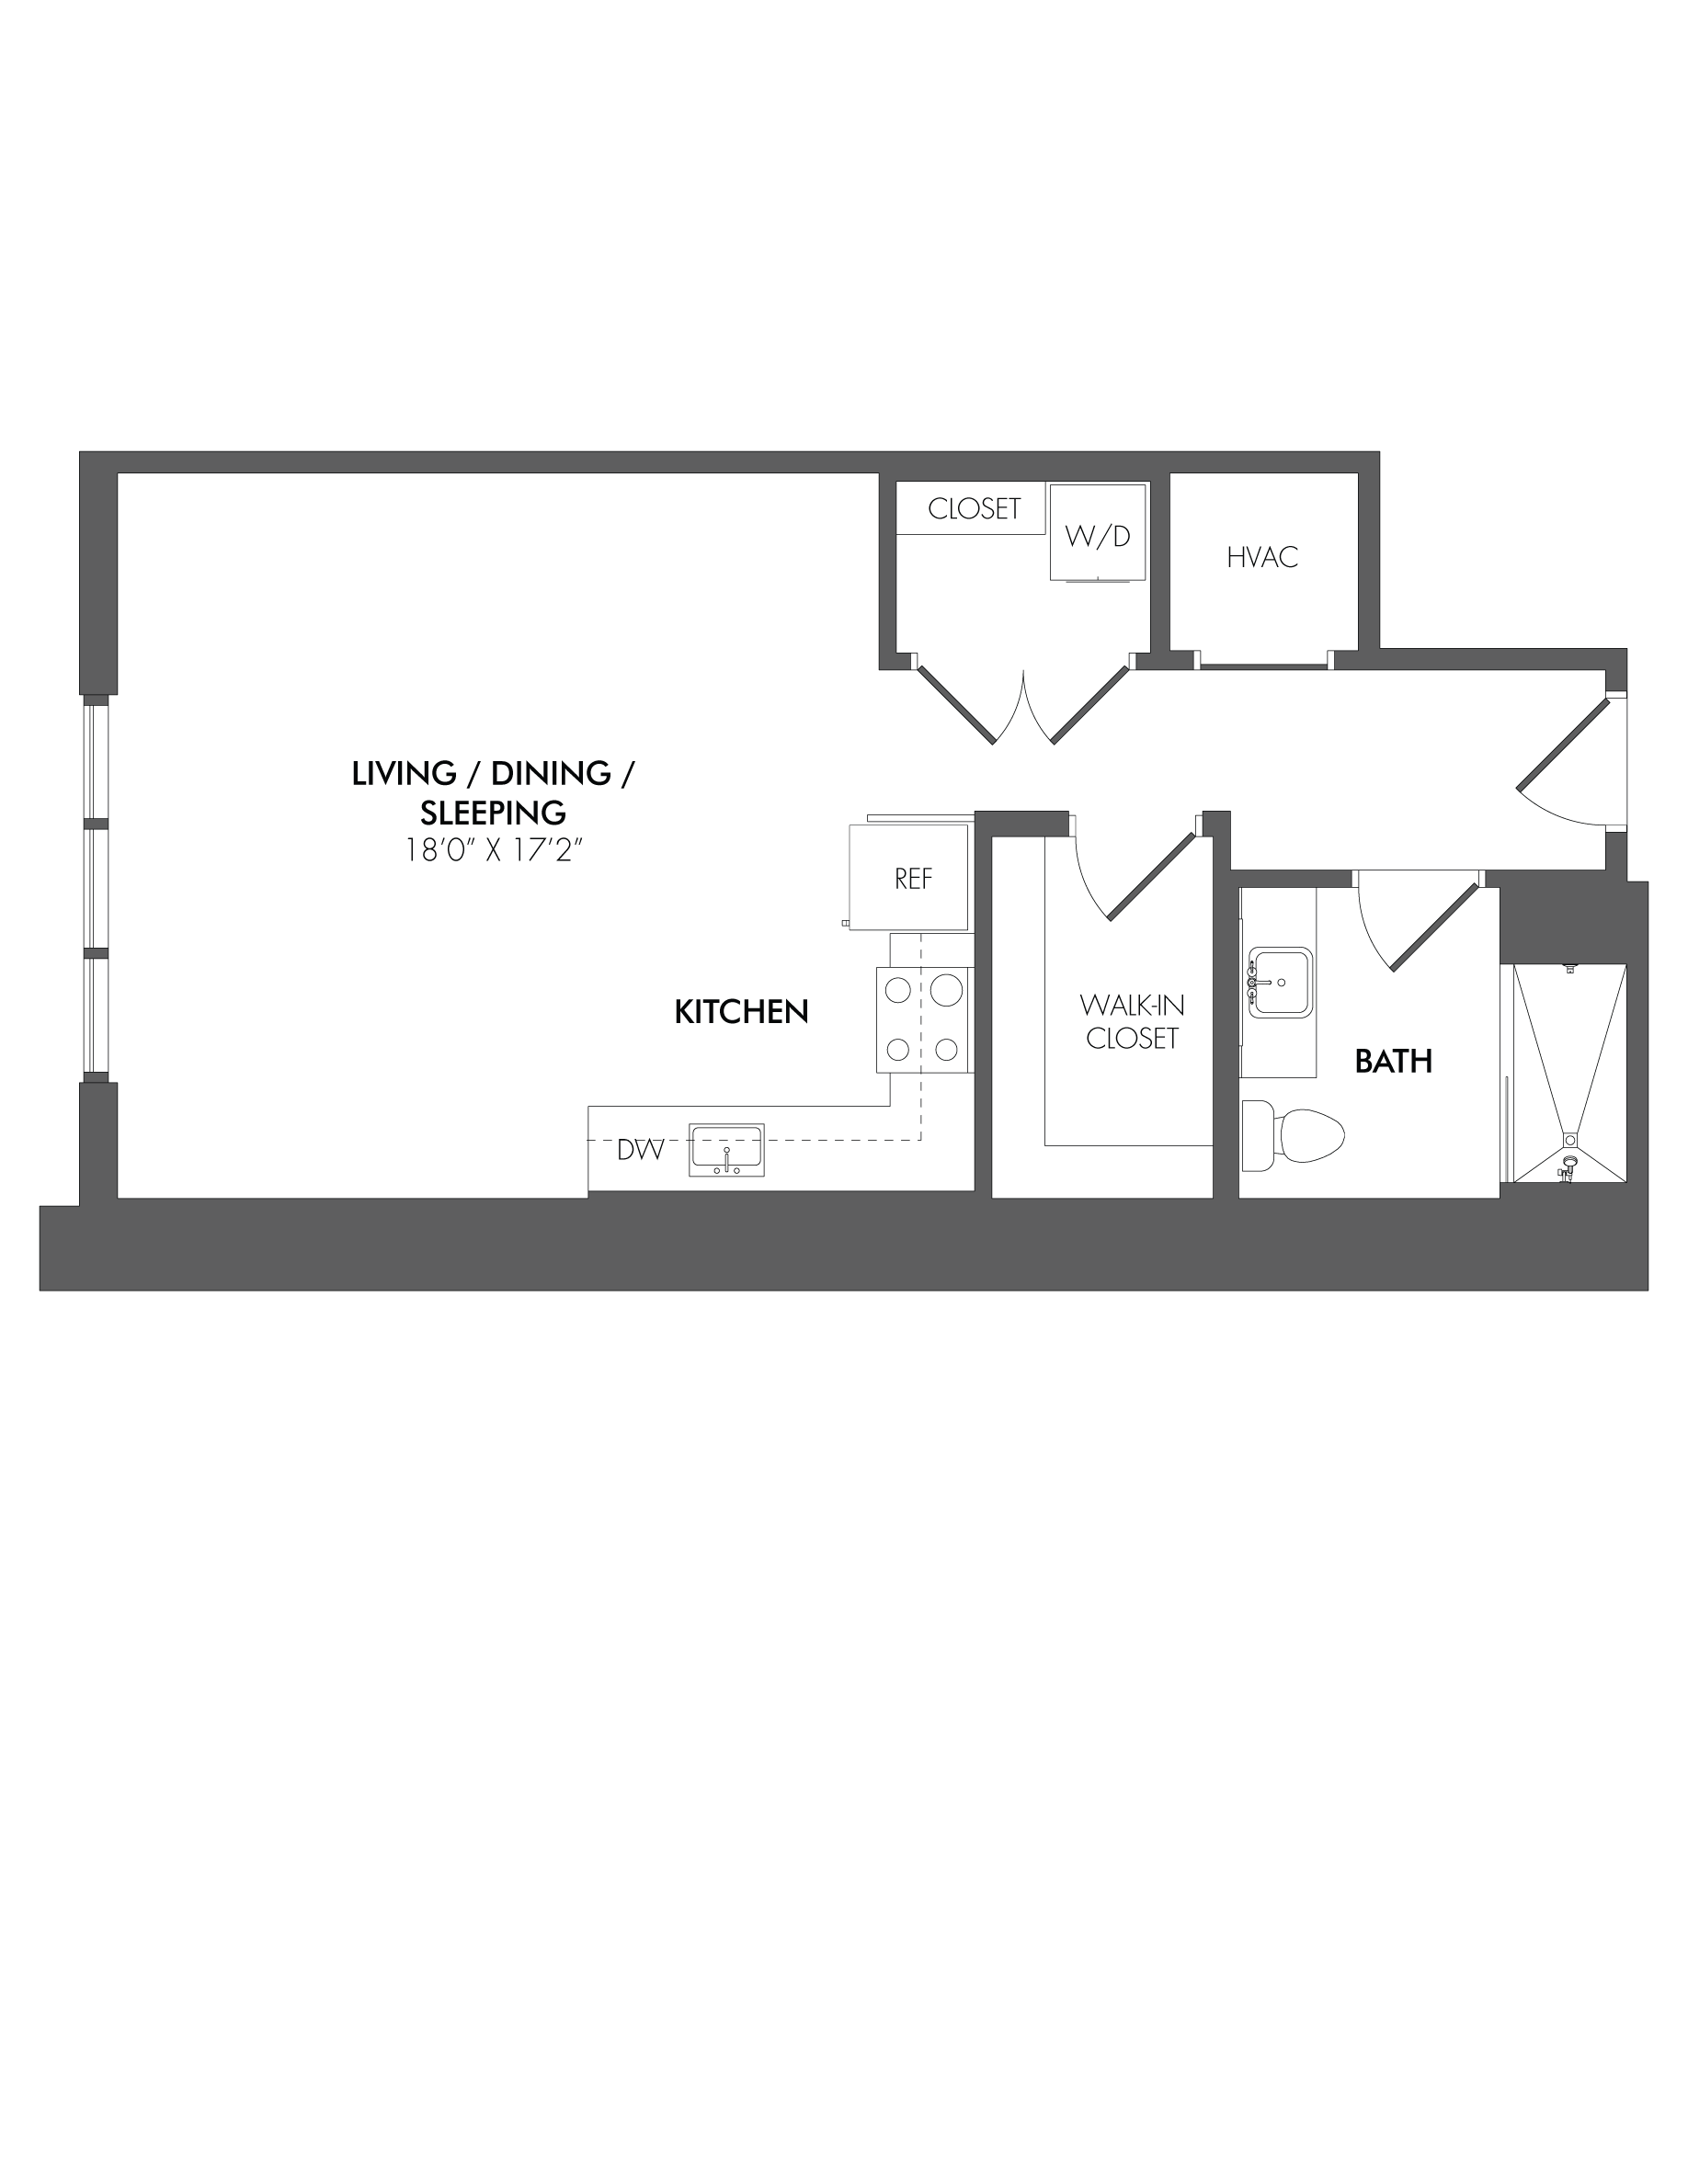 Apartment 1810 floorplan